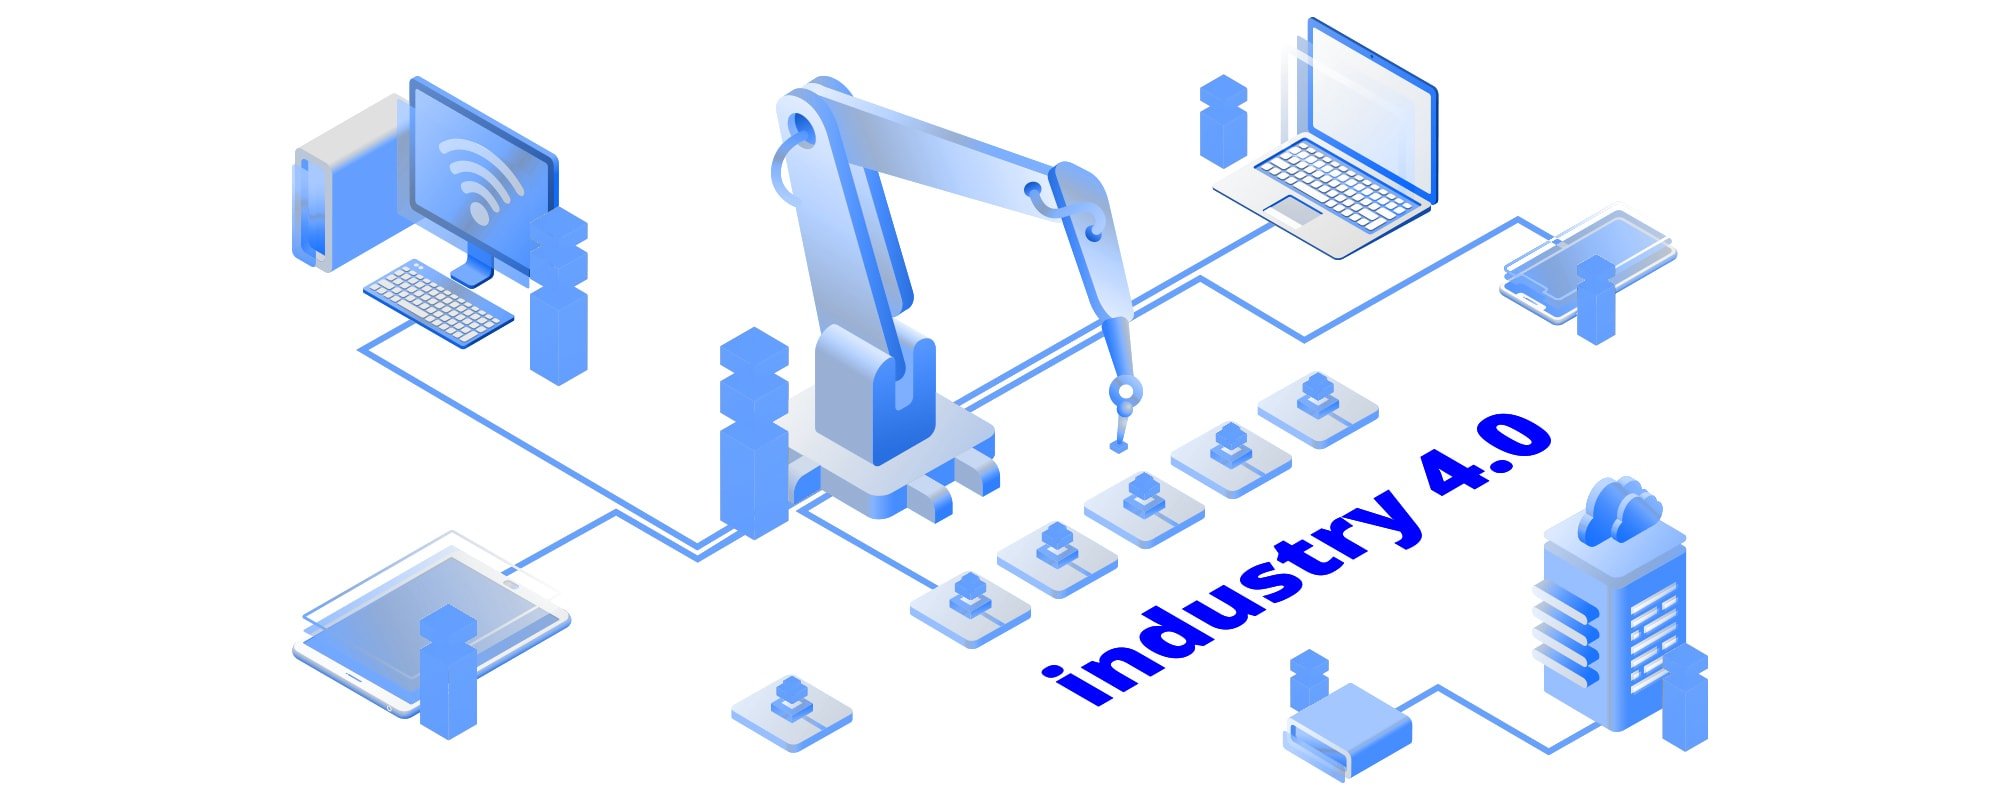 Industry 4.0. and blockchain